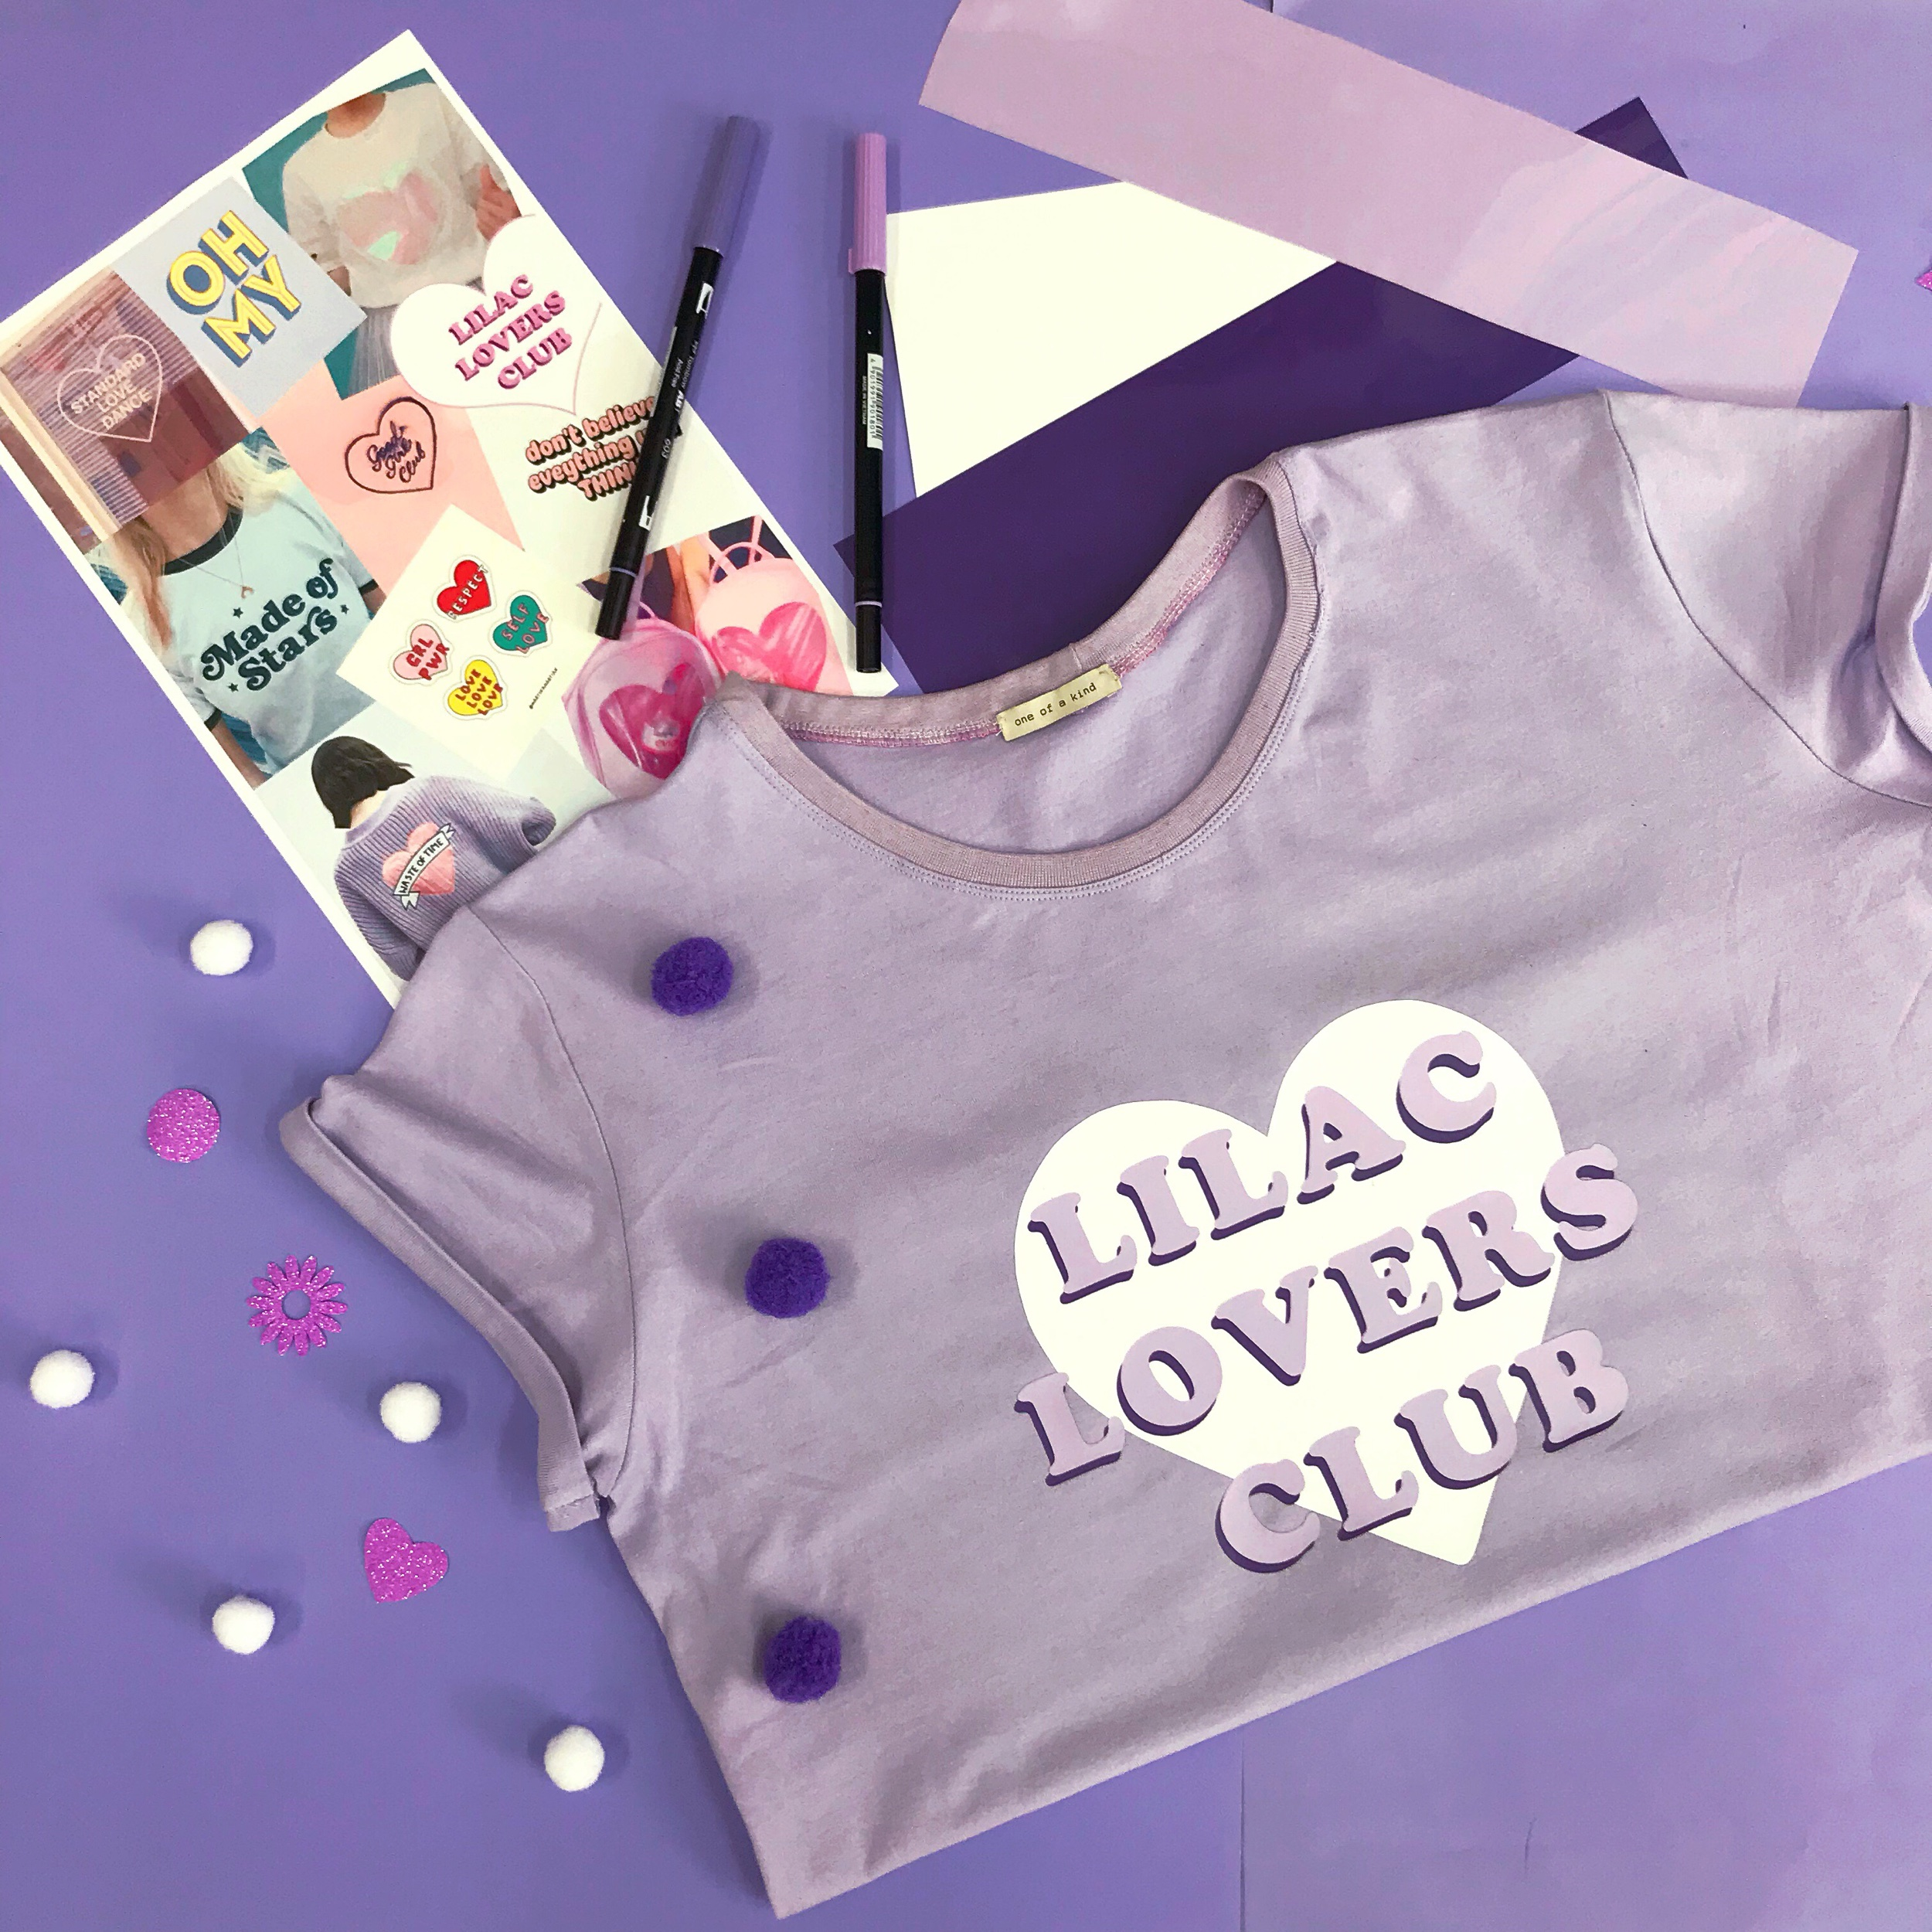 Lilac Lovers Club lets get creative